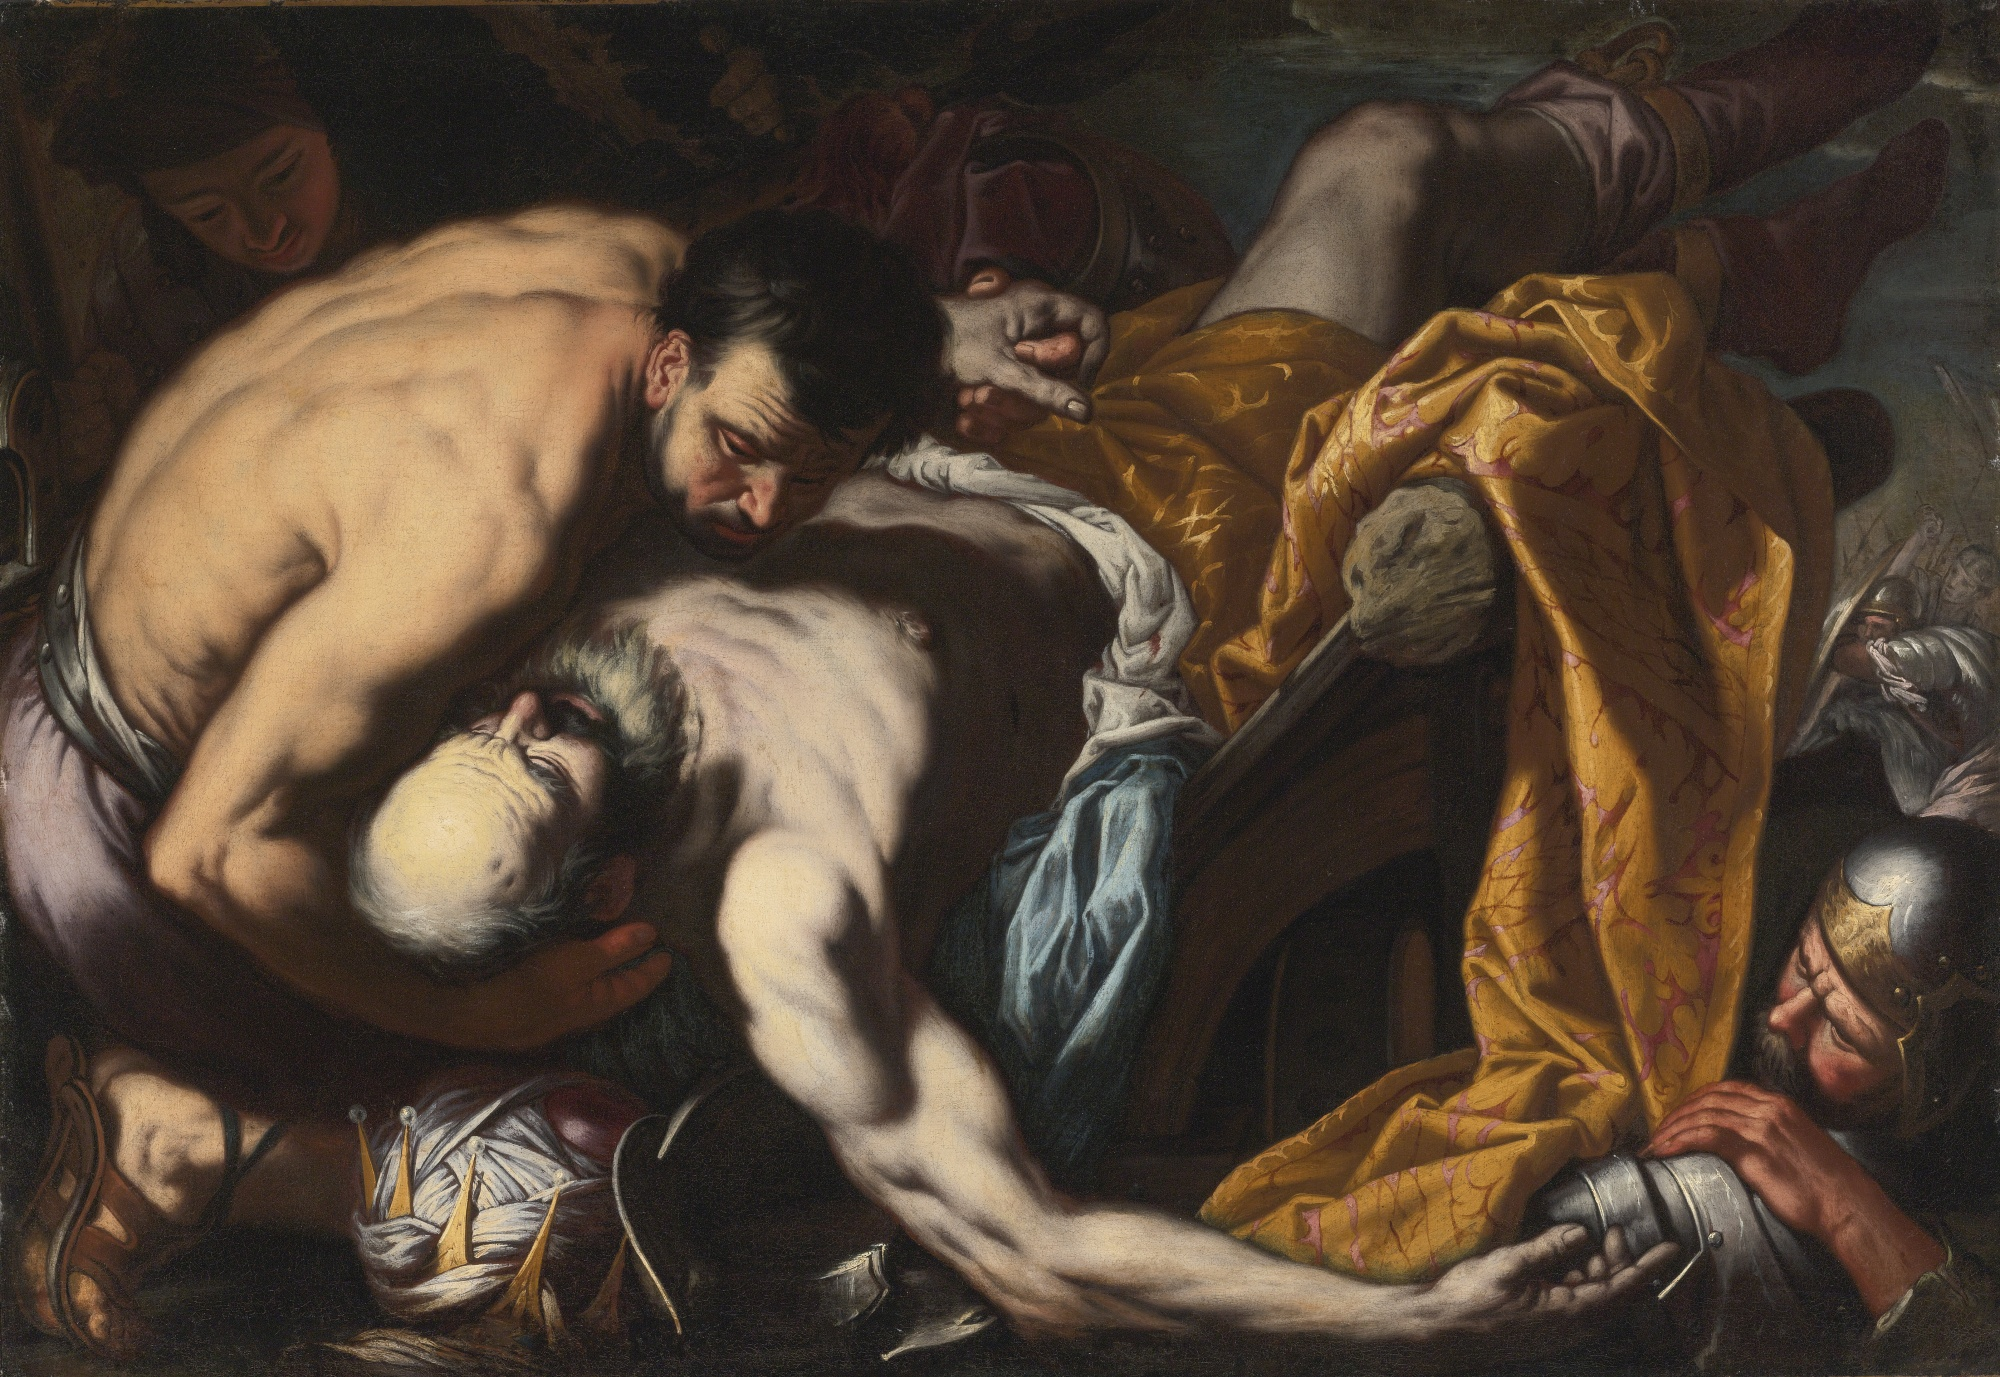 The Death of King Josiah by Antonio Zanchi c. 1660. Wikimedia.